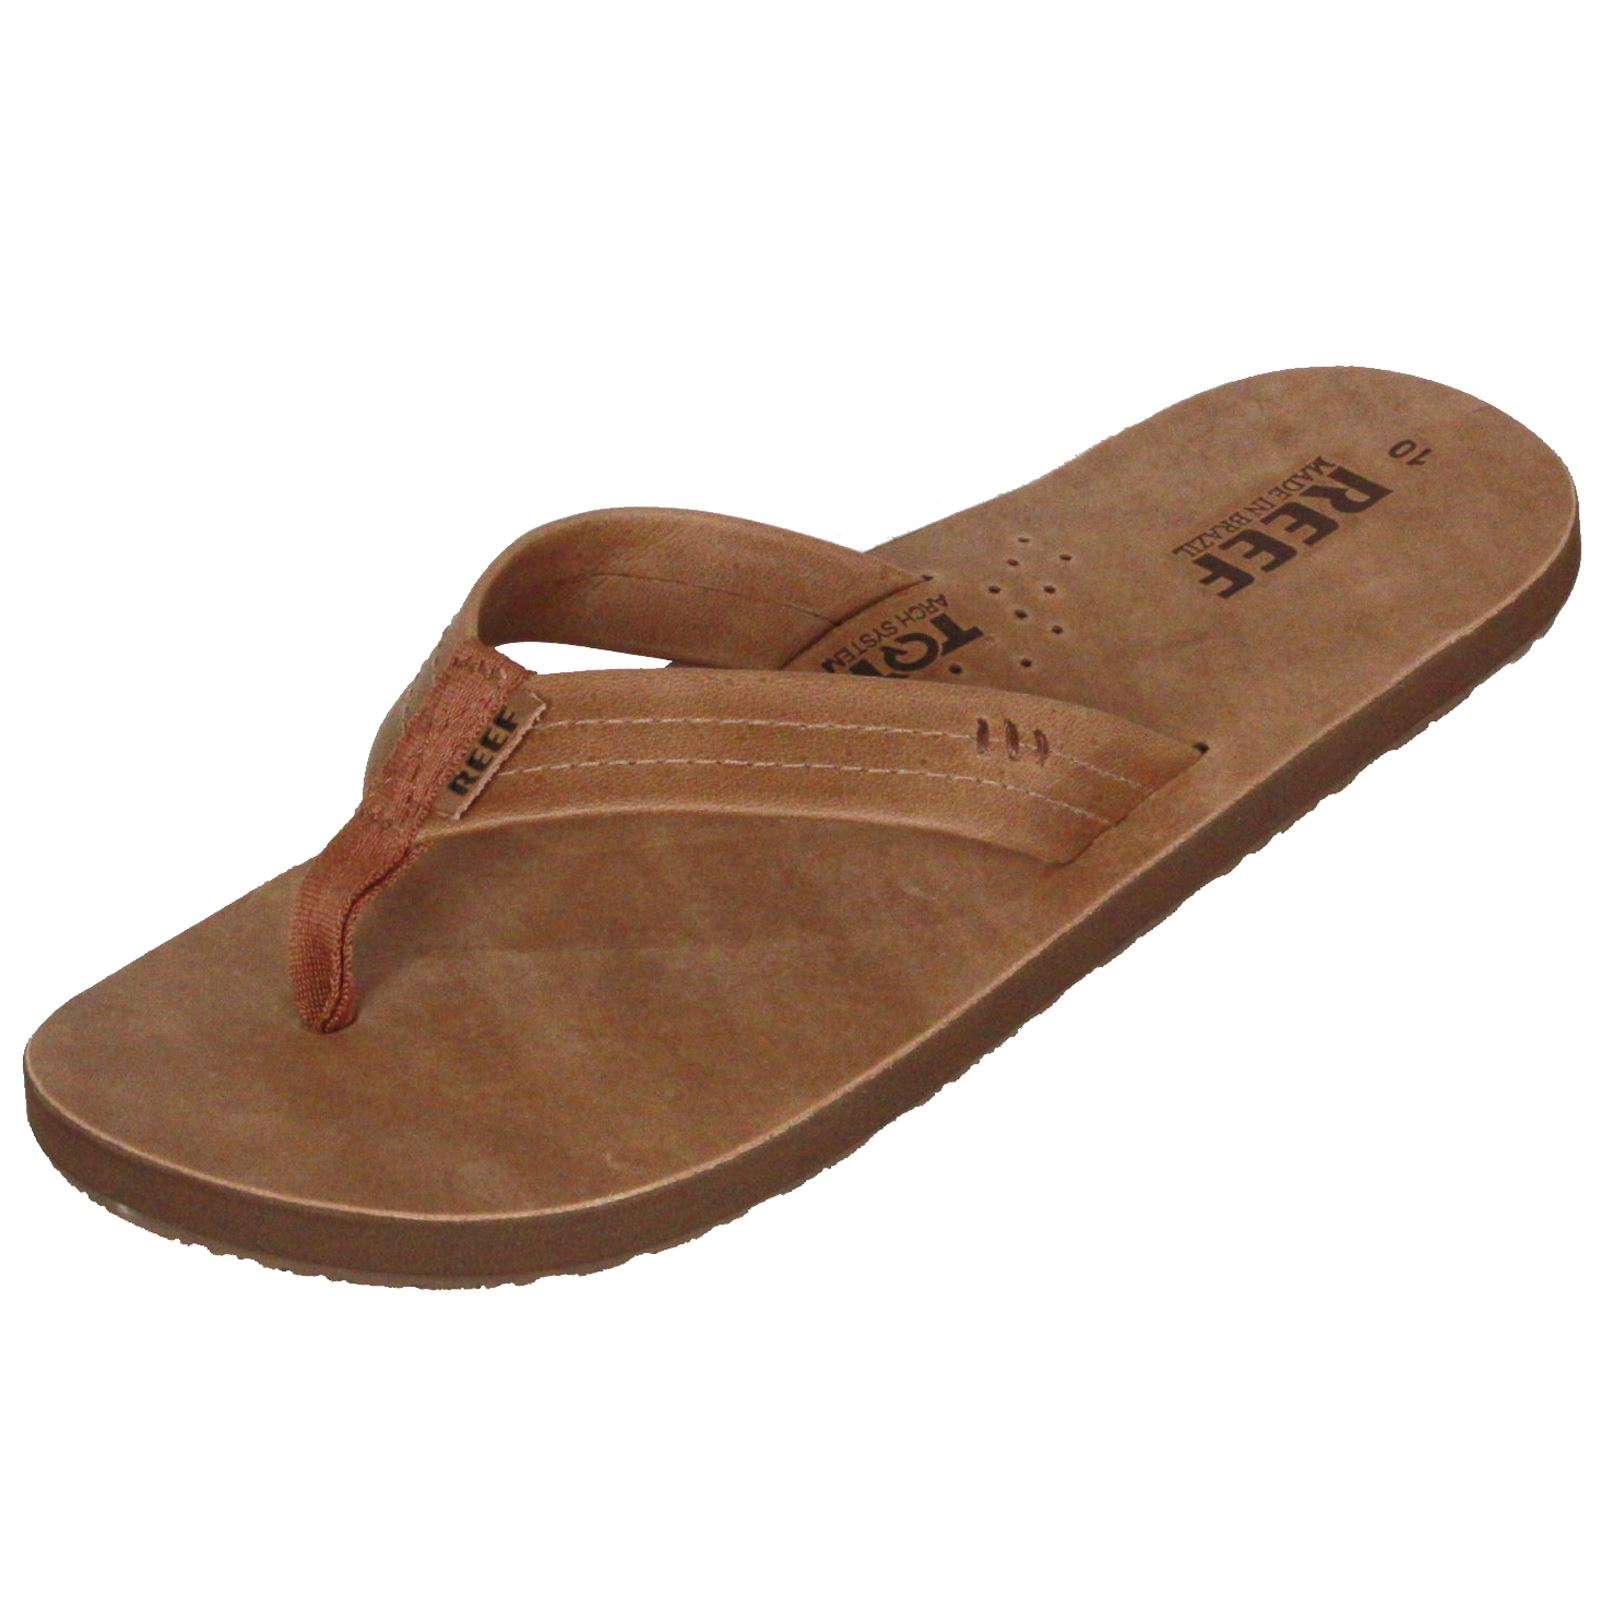 reef leather men 39 s sandal with bottle opener draftsman brown ebay. Black Bedroom Furniture Sets. Home Design Ideas